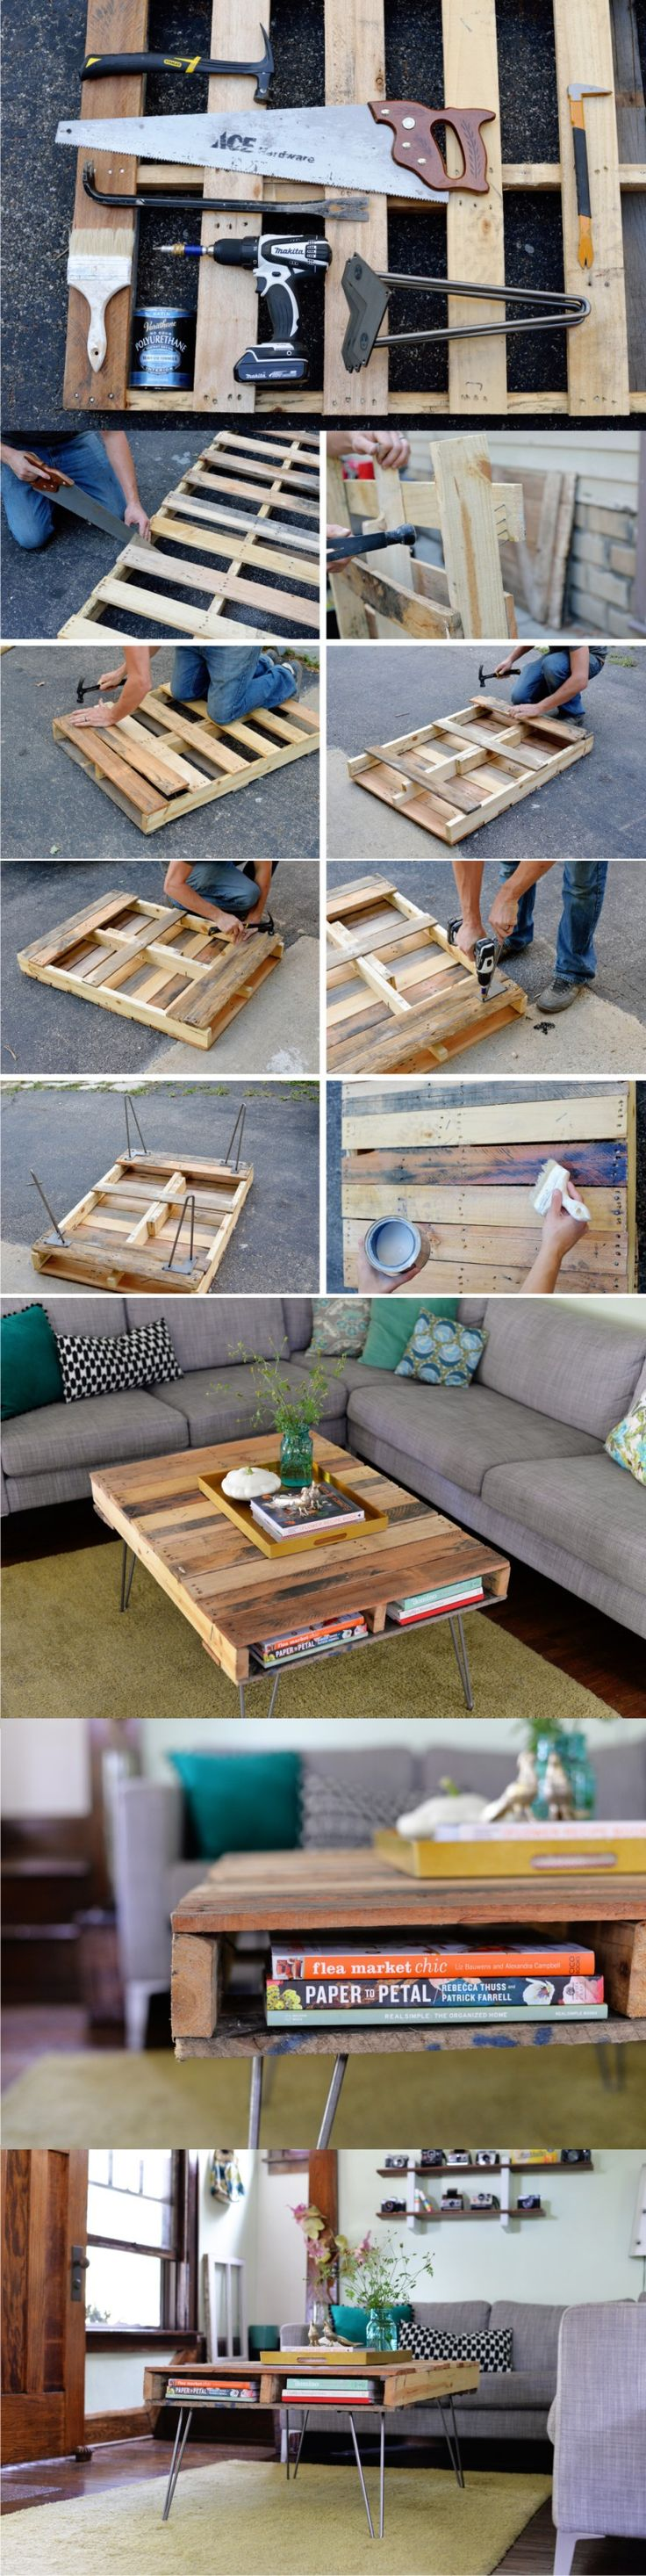 Pallet Coffee Table @kristinakobes this made me think of you because of the legs. I think it's cool :)